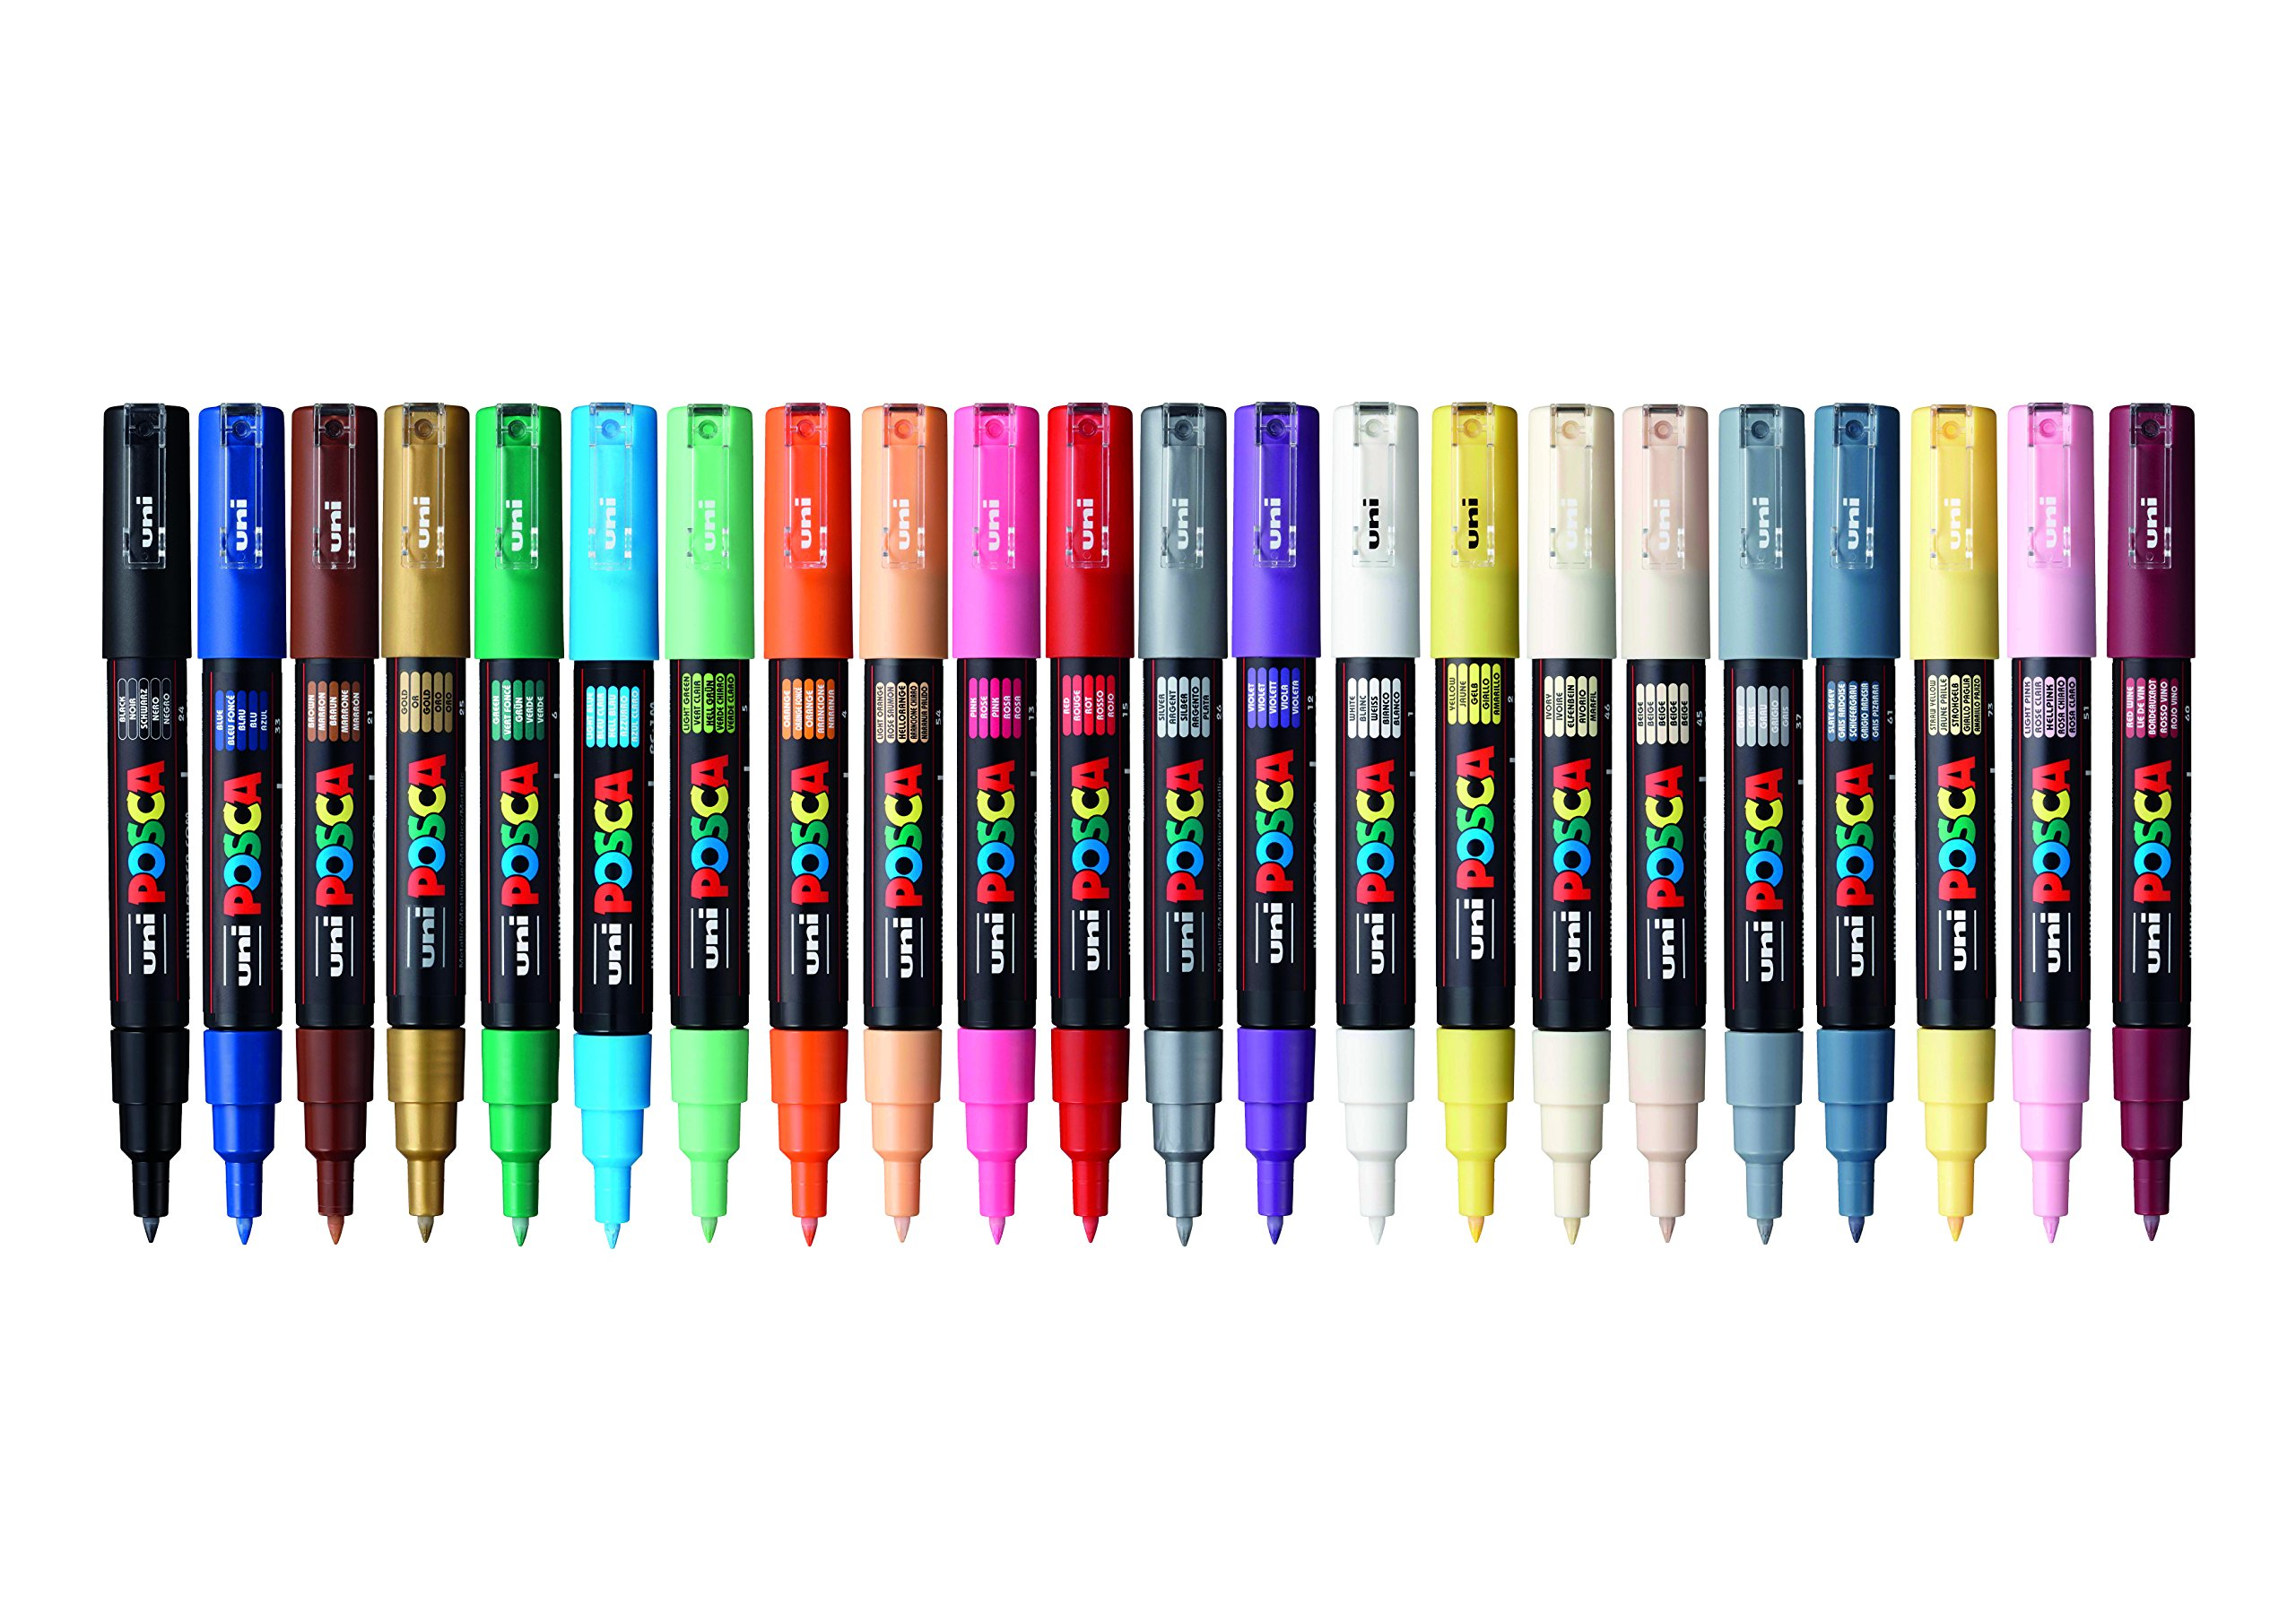 POSCA 153544865 1 mm Fine Tip Waterbased Paint Marker - Assorted Colours (Pack of 22) by posca (Image #1)